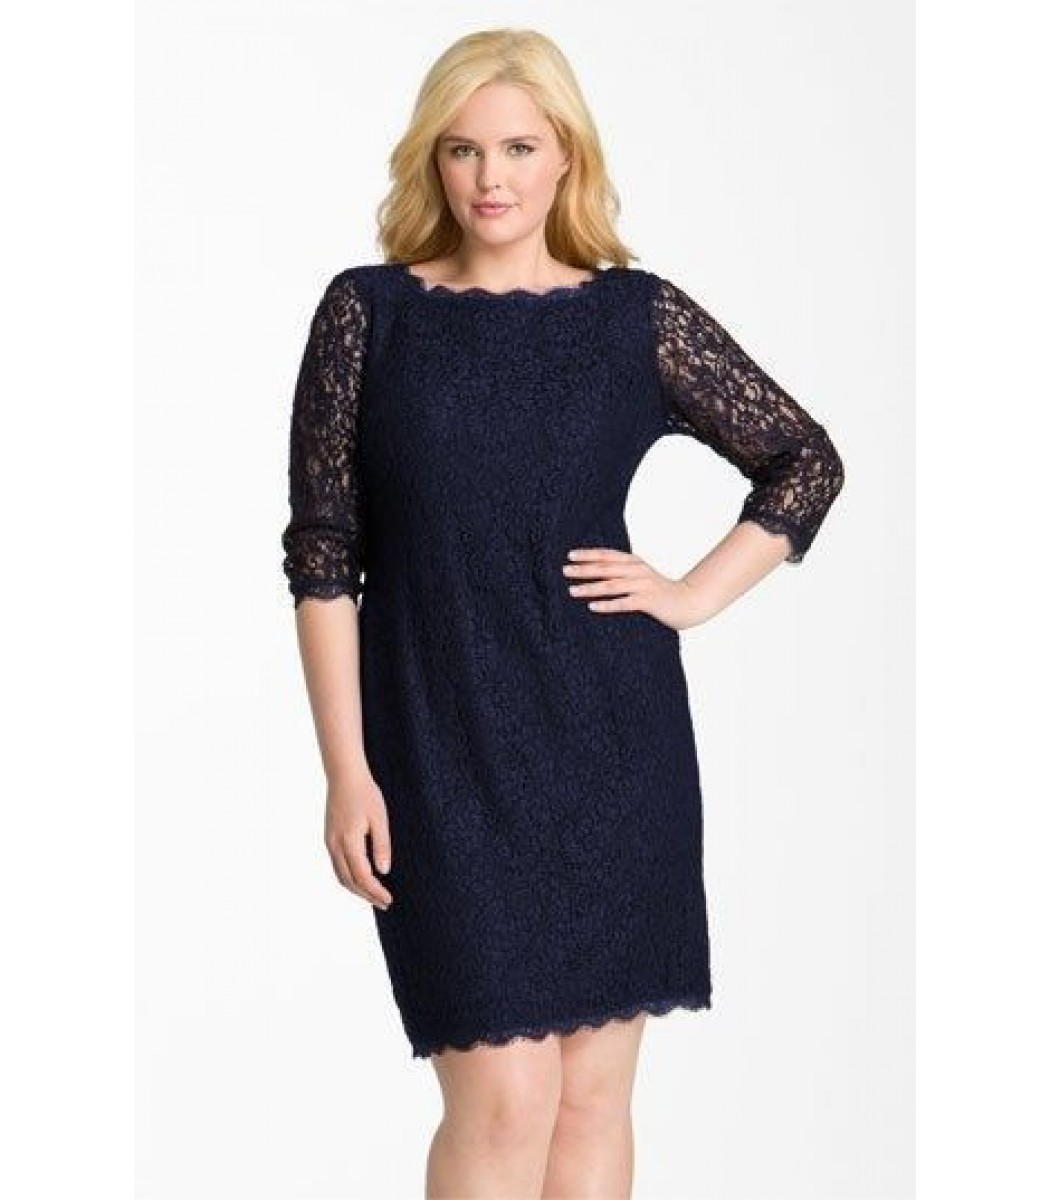 99427a8a21ce ADRIANNA PAPELL 041864781 NAVY Blue Lace Cocktail Dress Plus Size 20W 22W.   110.40